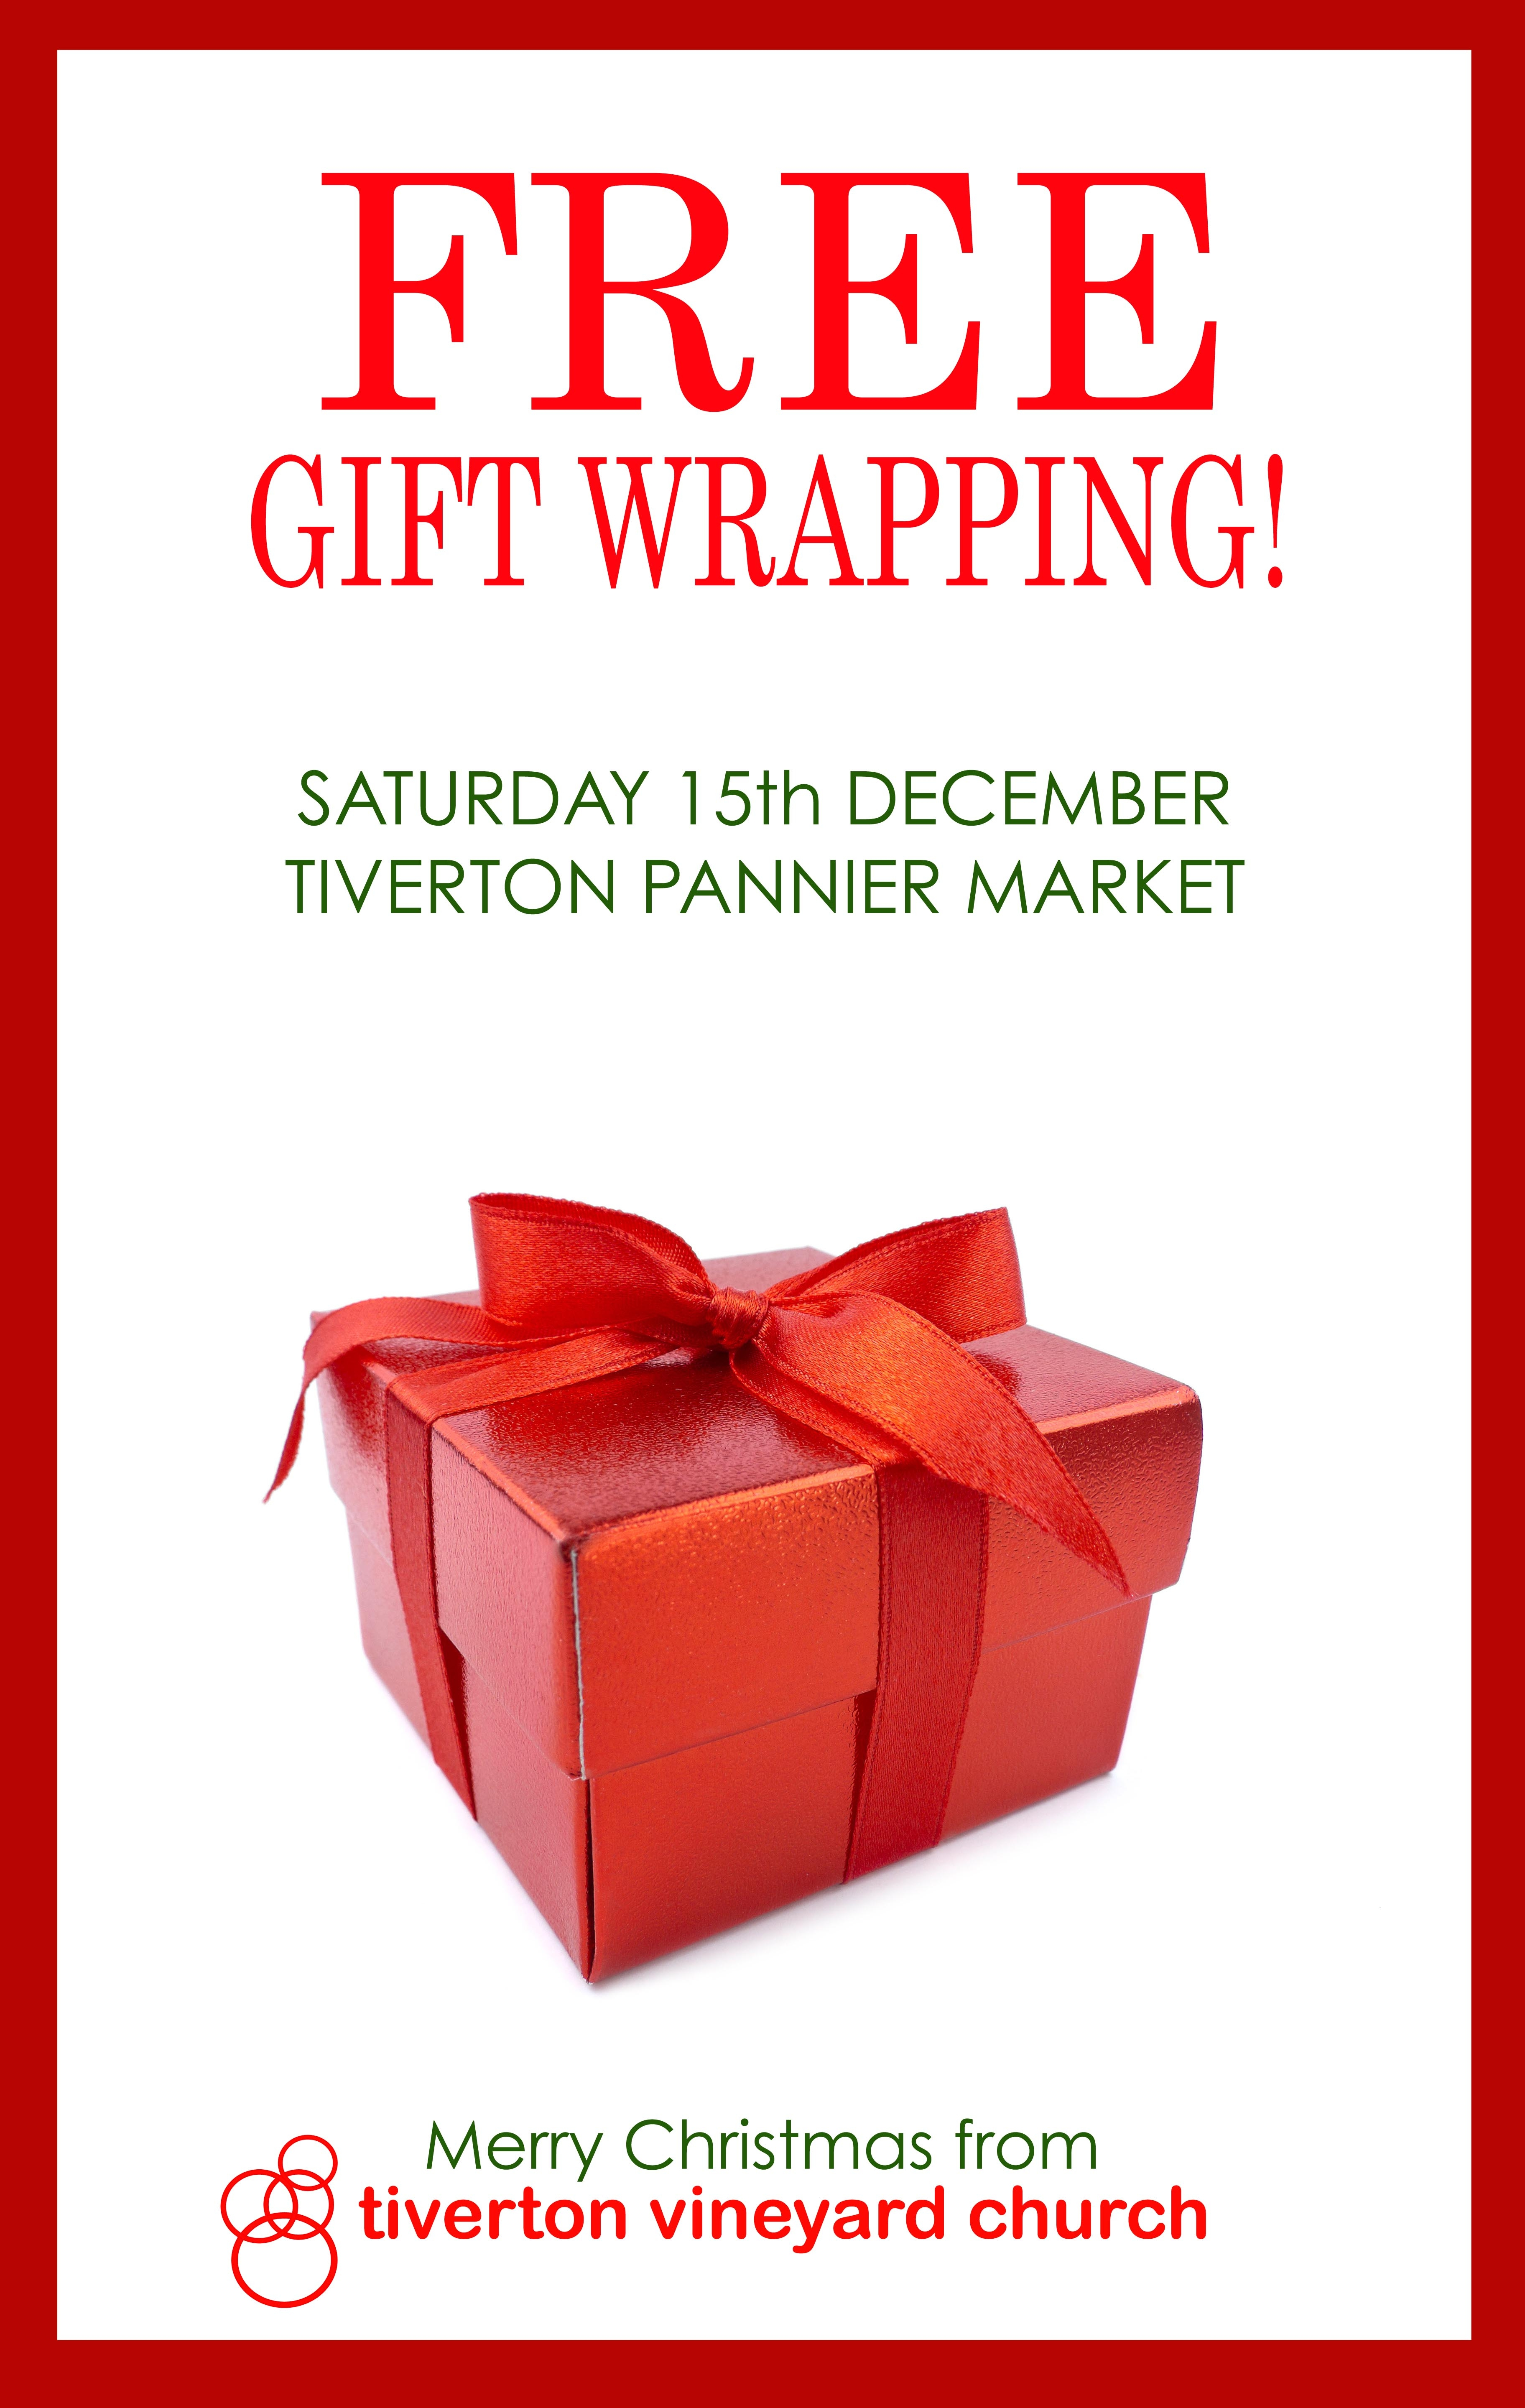 Free gift wrapping tiverton vineyard church on saturday the 15th of december some of the friendly faces from tiverton vineyard church will be offering a free christmas present wrapping service in the negle Gallery